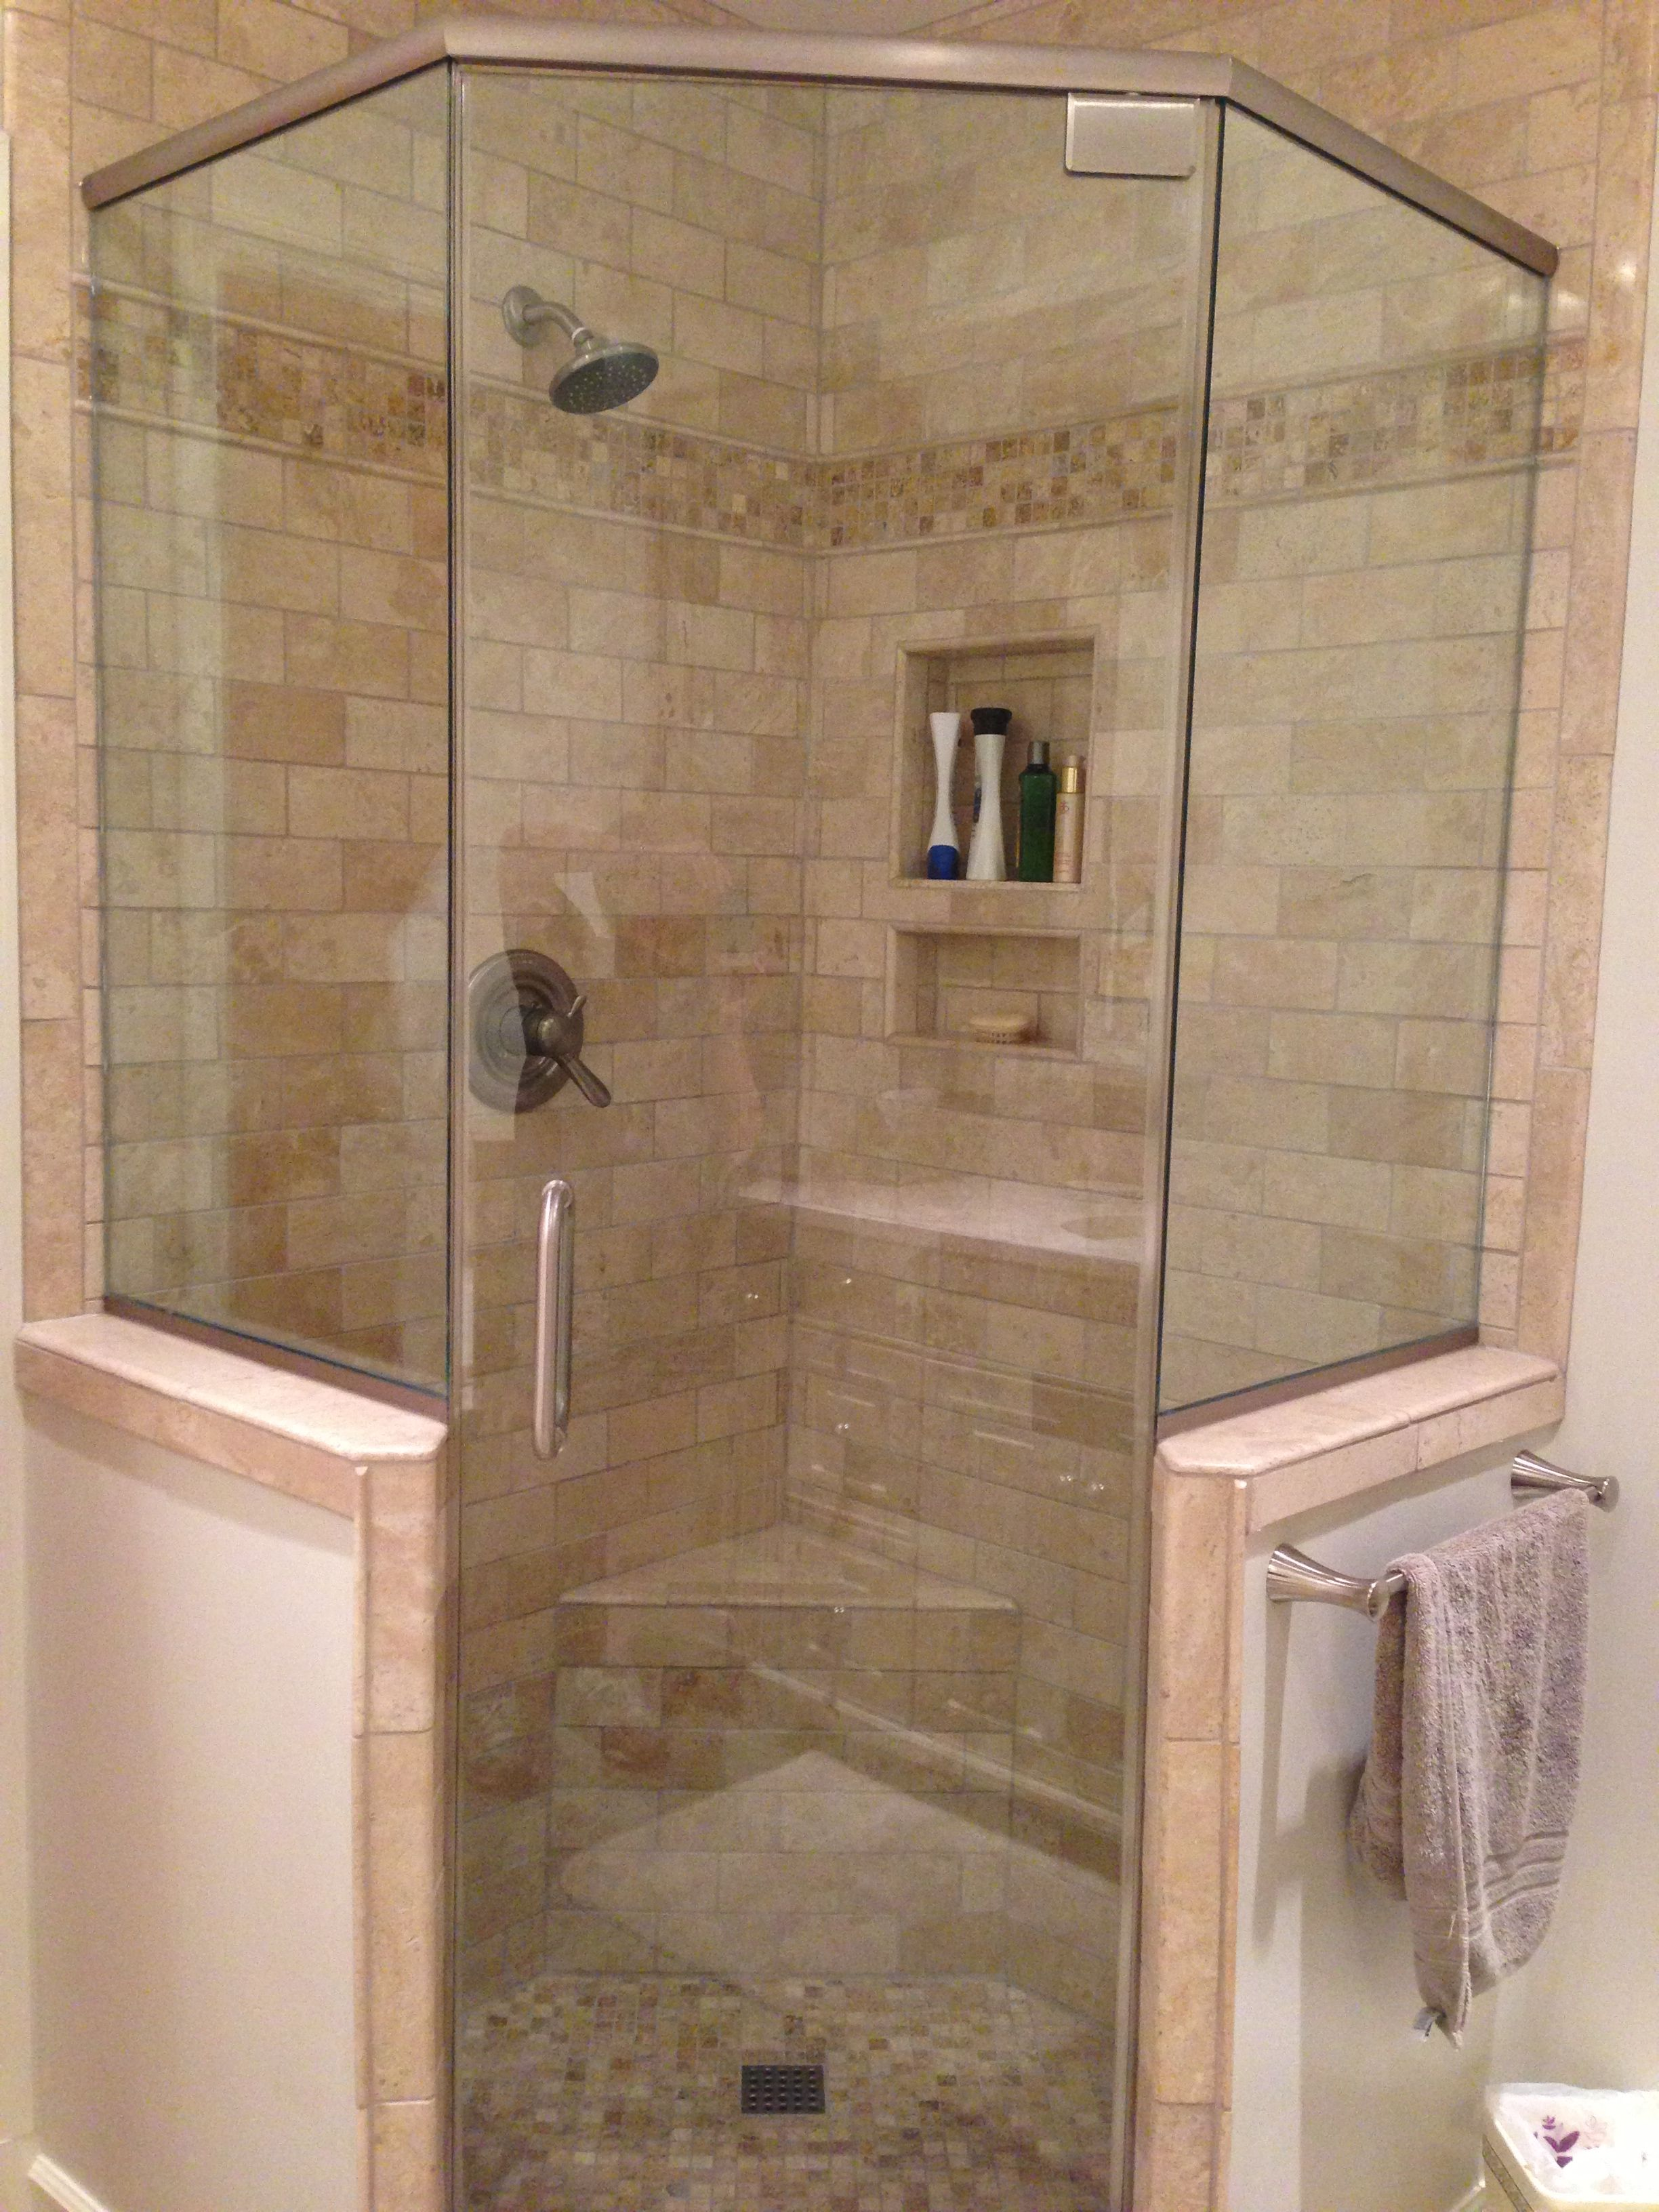 Bathroom shower with knee walls 2017 2018 best cars for Knee wall support